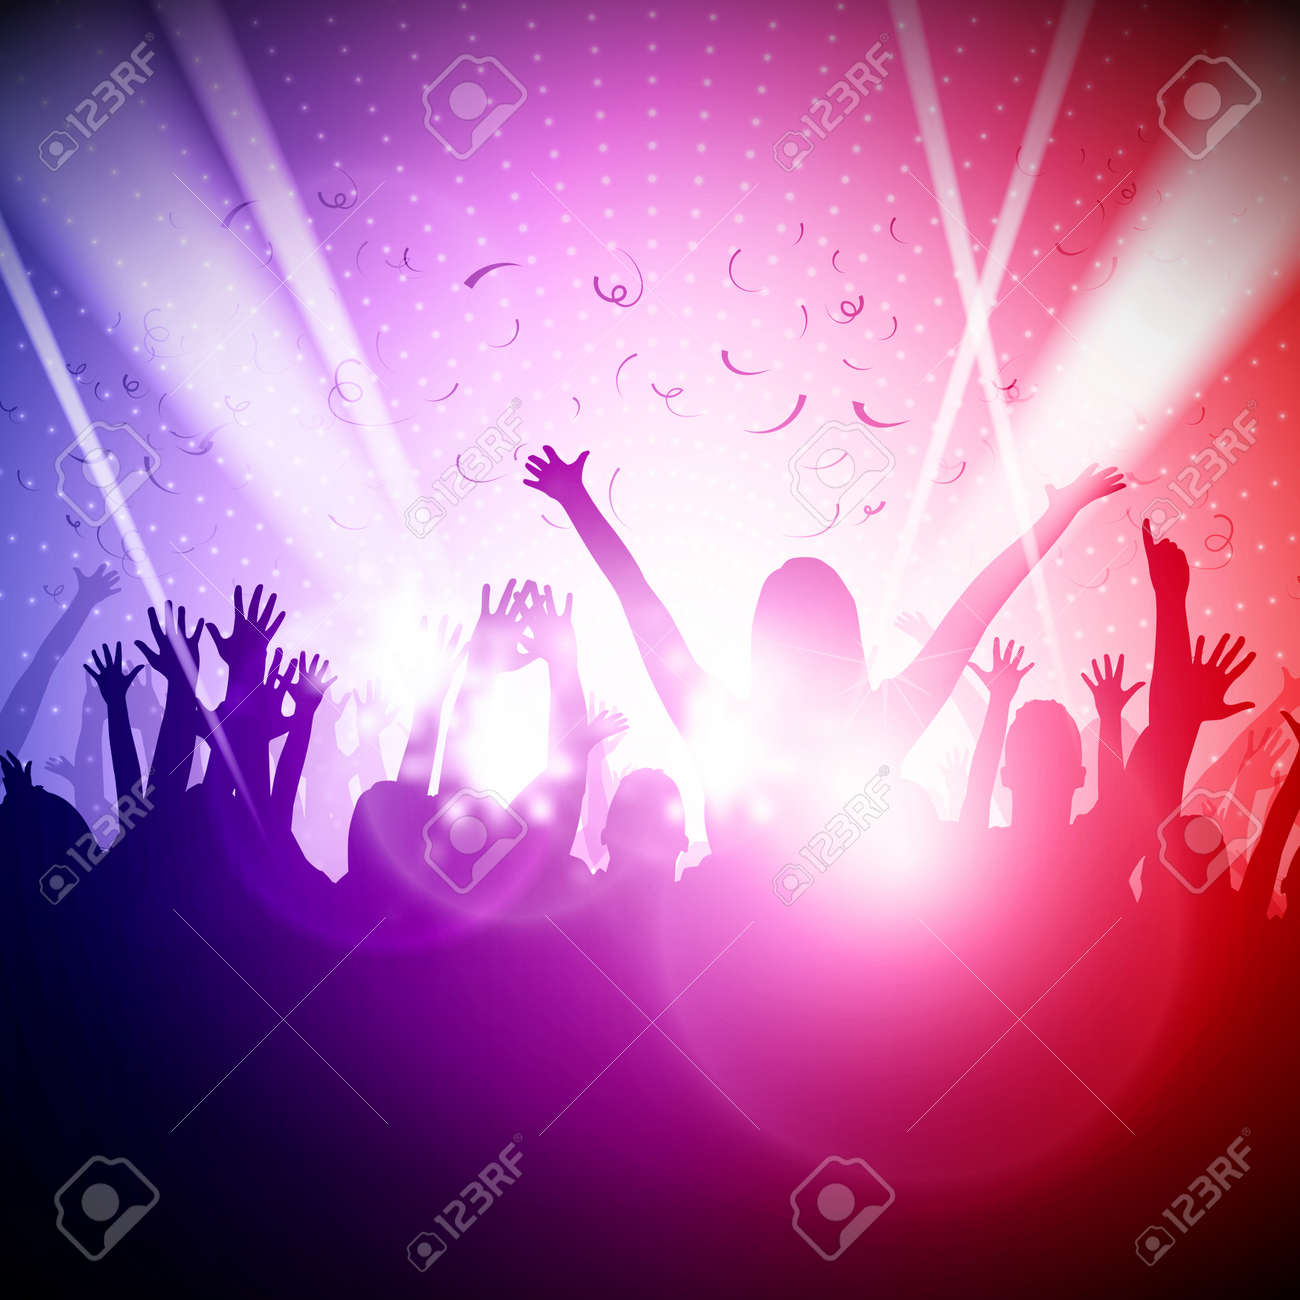 Party People in Club Vector Background - 38581175